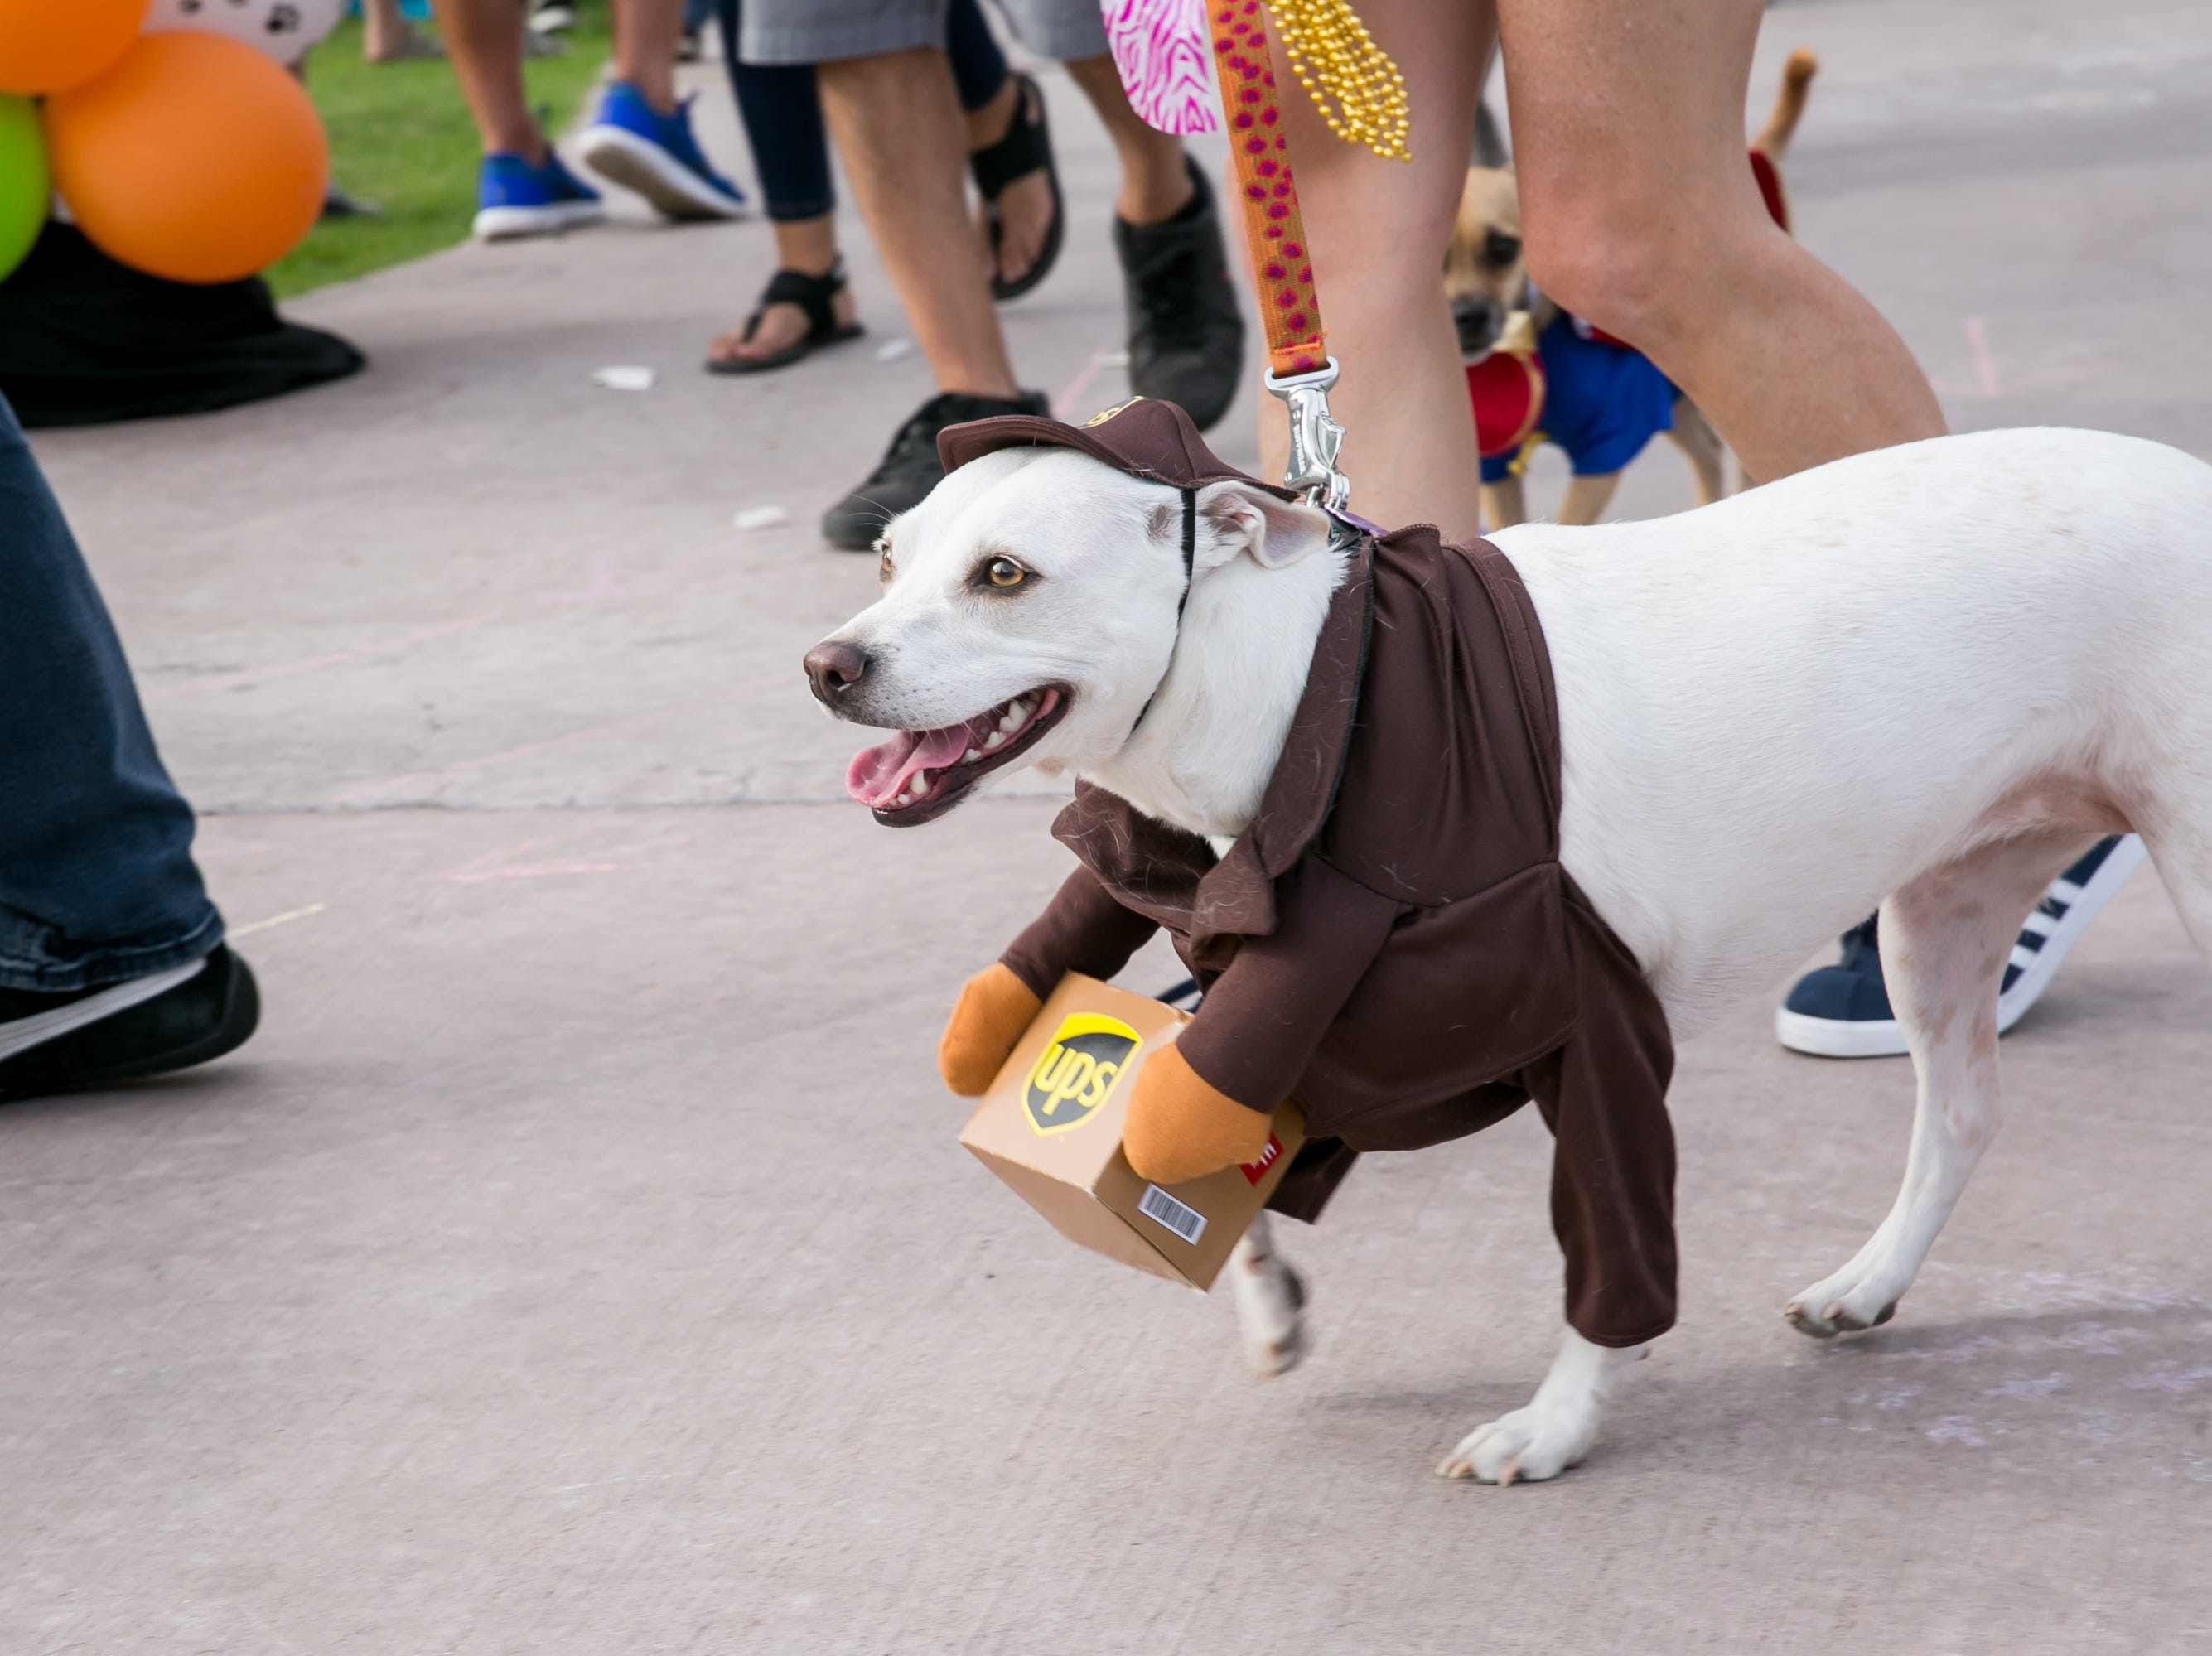 This pup delivered an adorable package during Howl-o-Ween at Hance Park on Sunday, October 28, 2018.